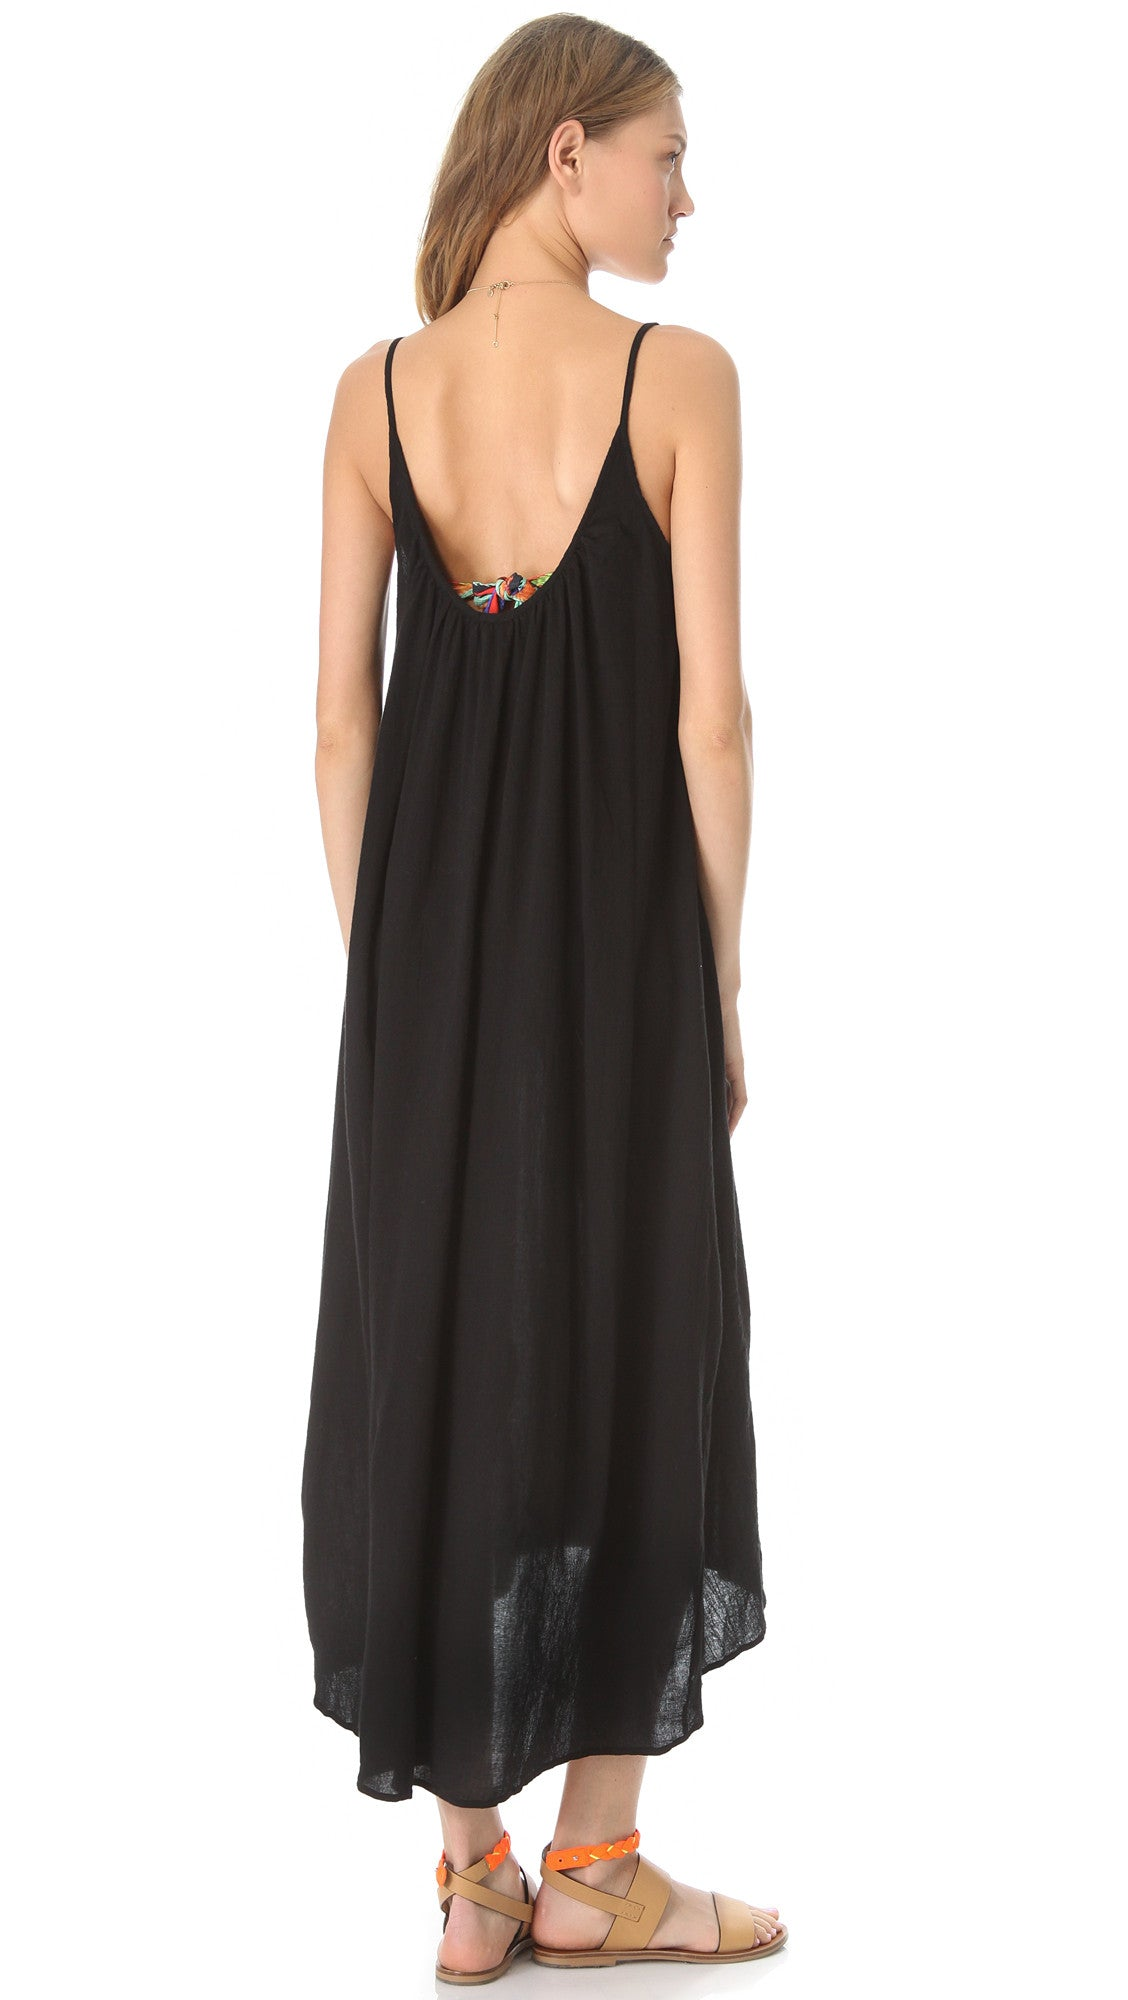 9Seed Tulum Maxi Dress in Black Swim Cover Up Beach